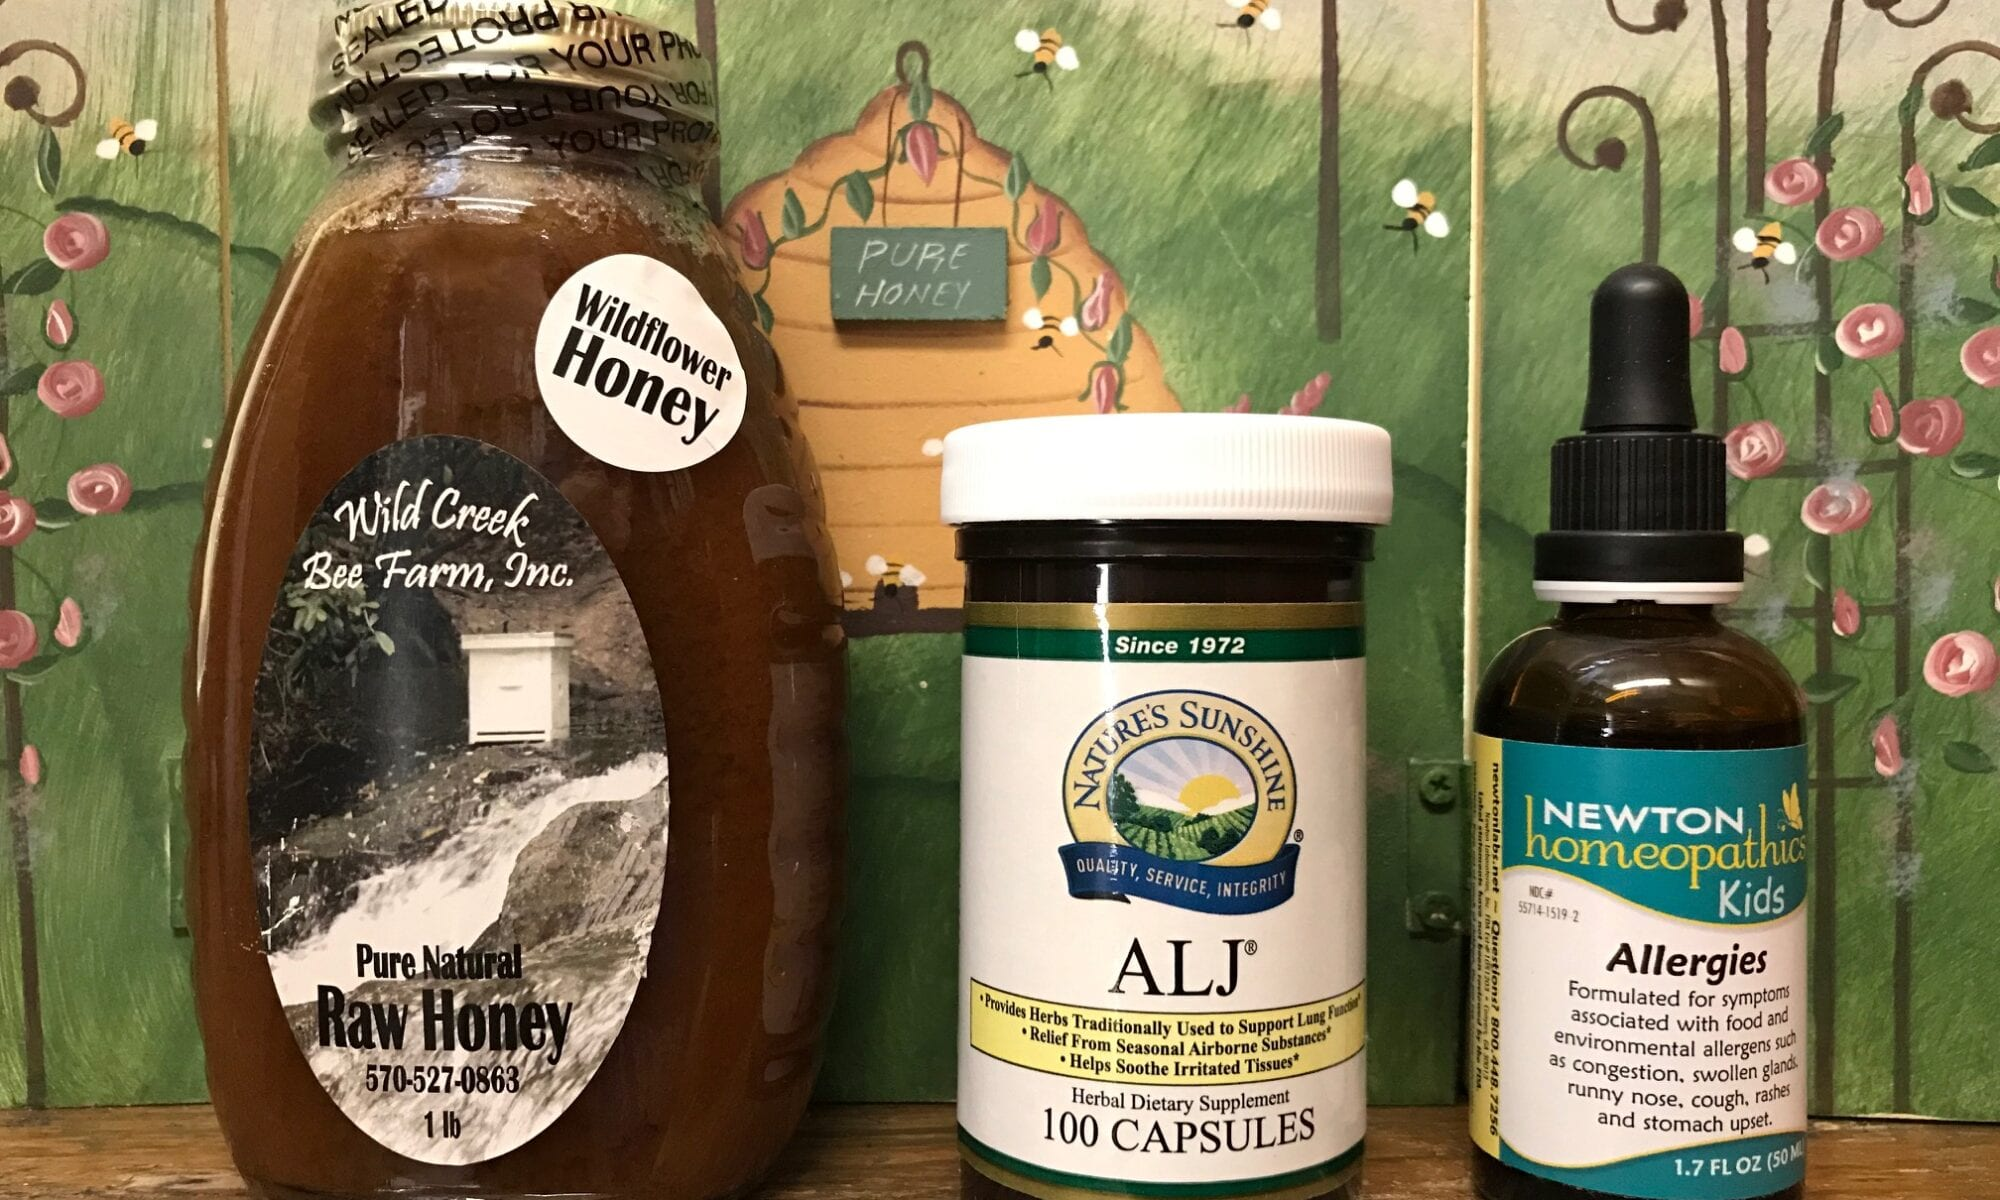 Honey for sale by Country Harmony Natural Foods